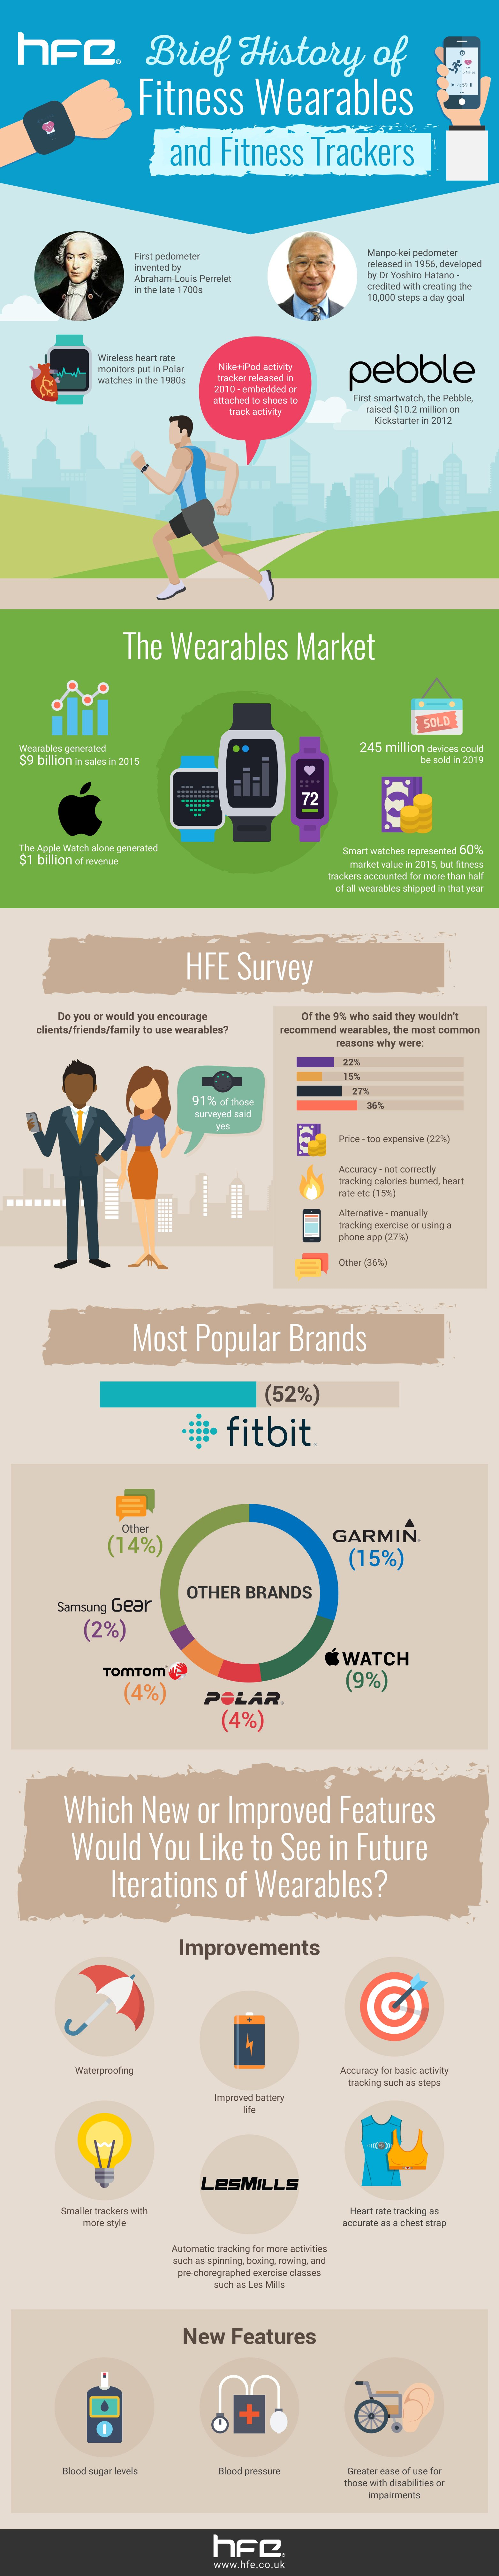 Fitness tracker and wearables survey infographic featuring Fitbit and Apple Watch